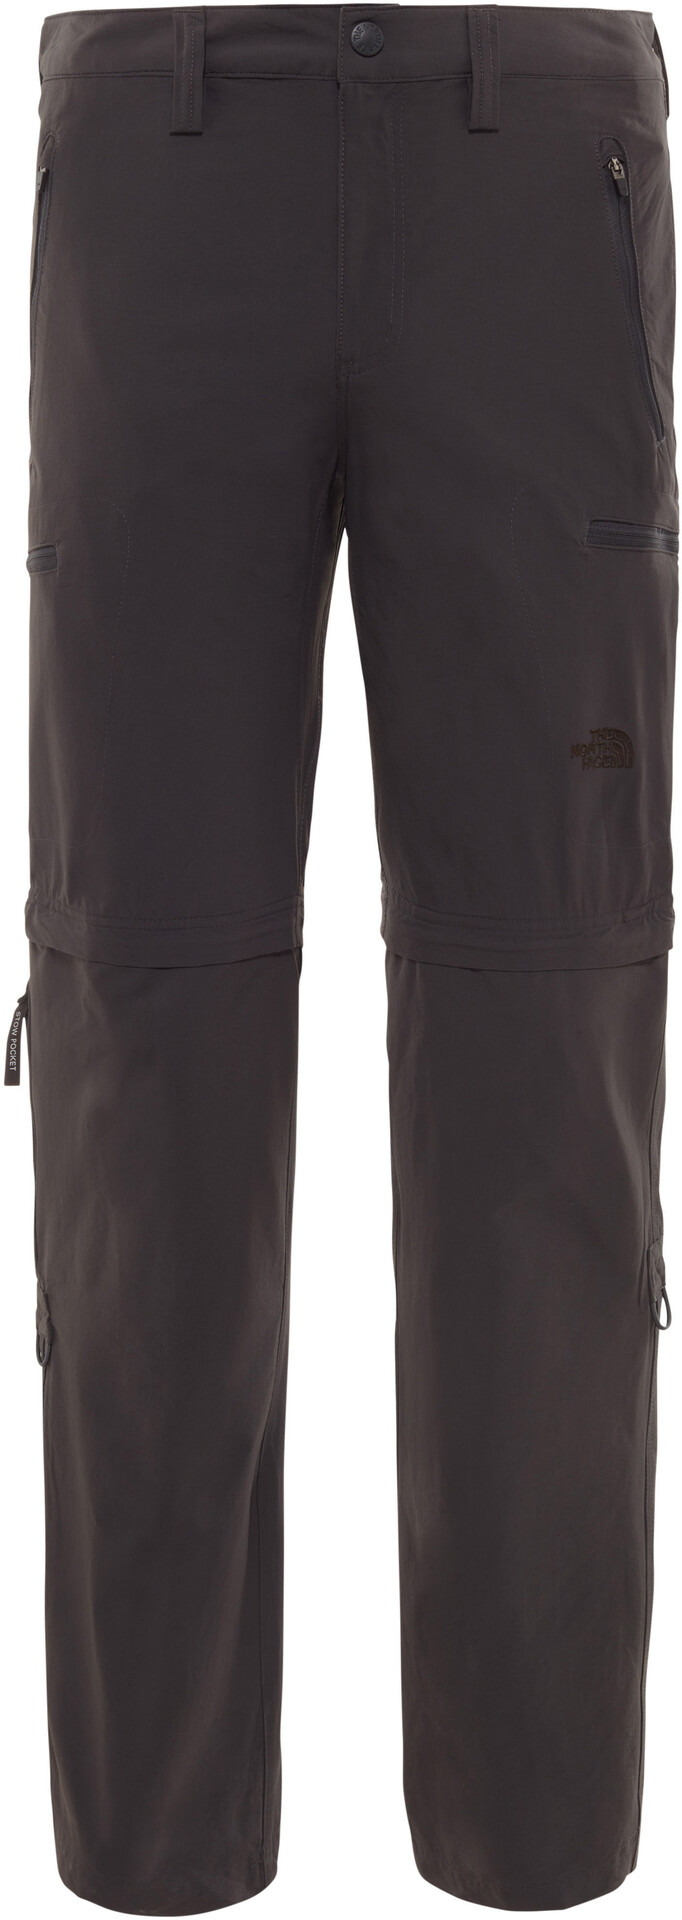 pantalon hombre the north face